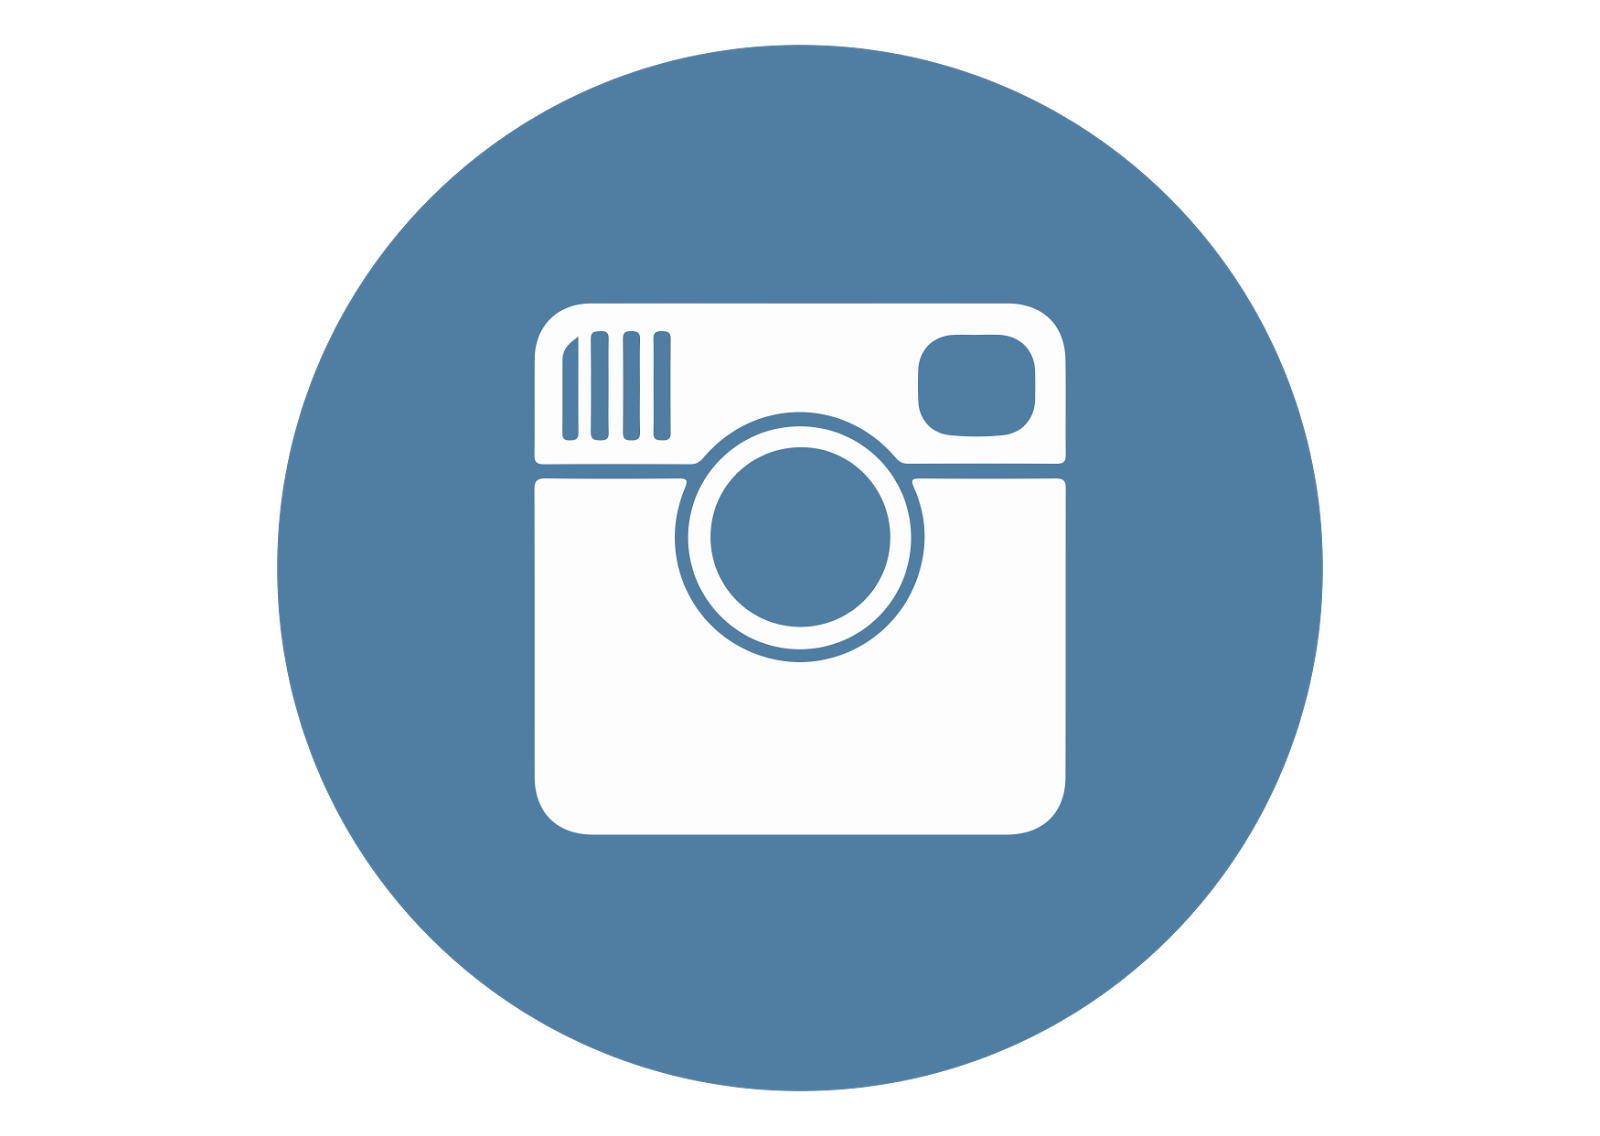 Instagram Icon Logo Vector ~ Format Cdr, Ai, Eps, Svg, PDF ...